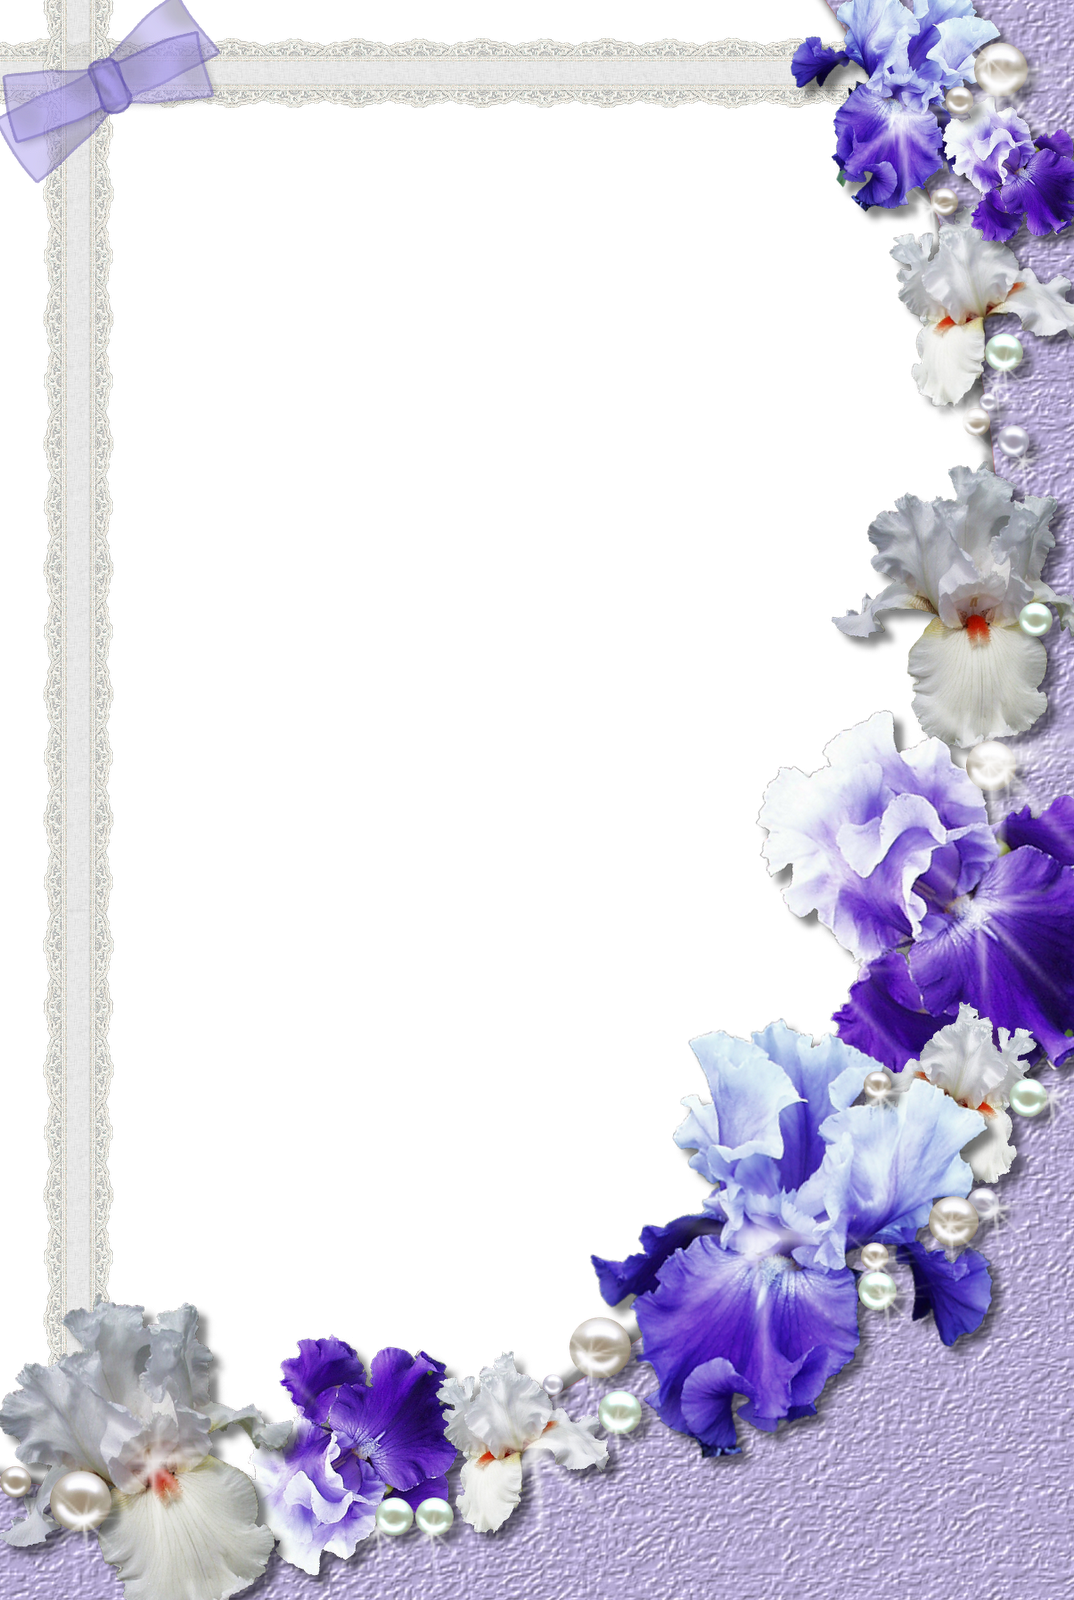 Hd png frames. Wallpapers free backgrounds on